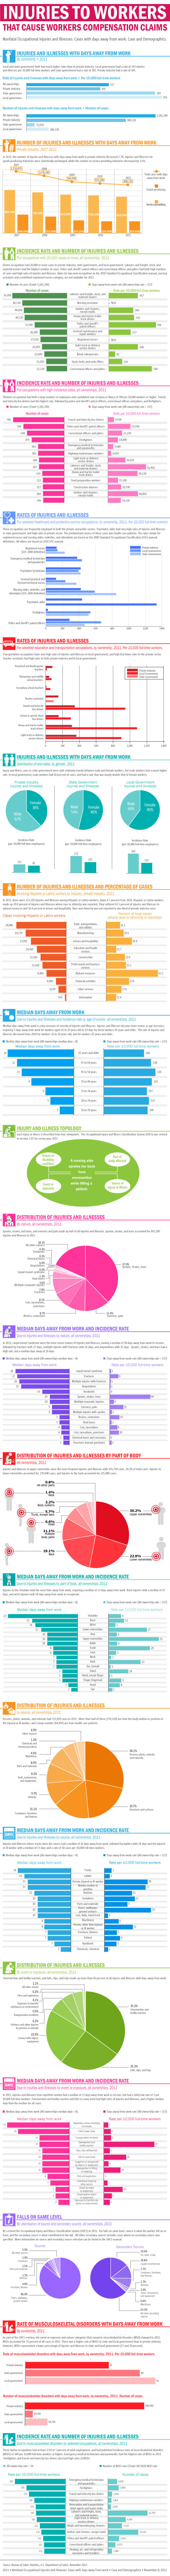 20130411-Injury-Stats BACK-UP